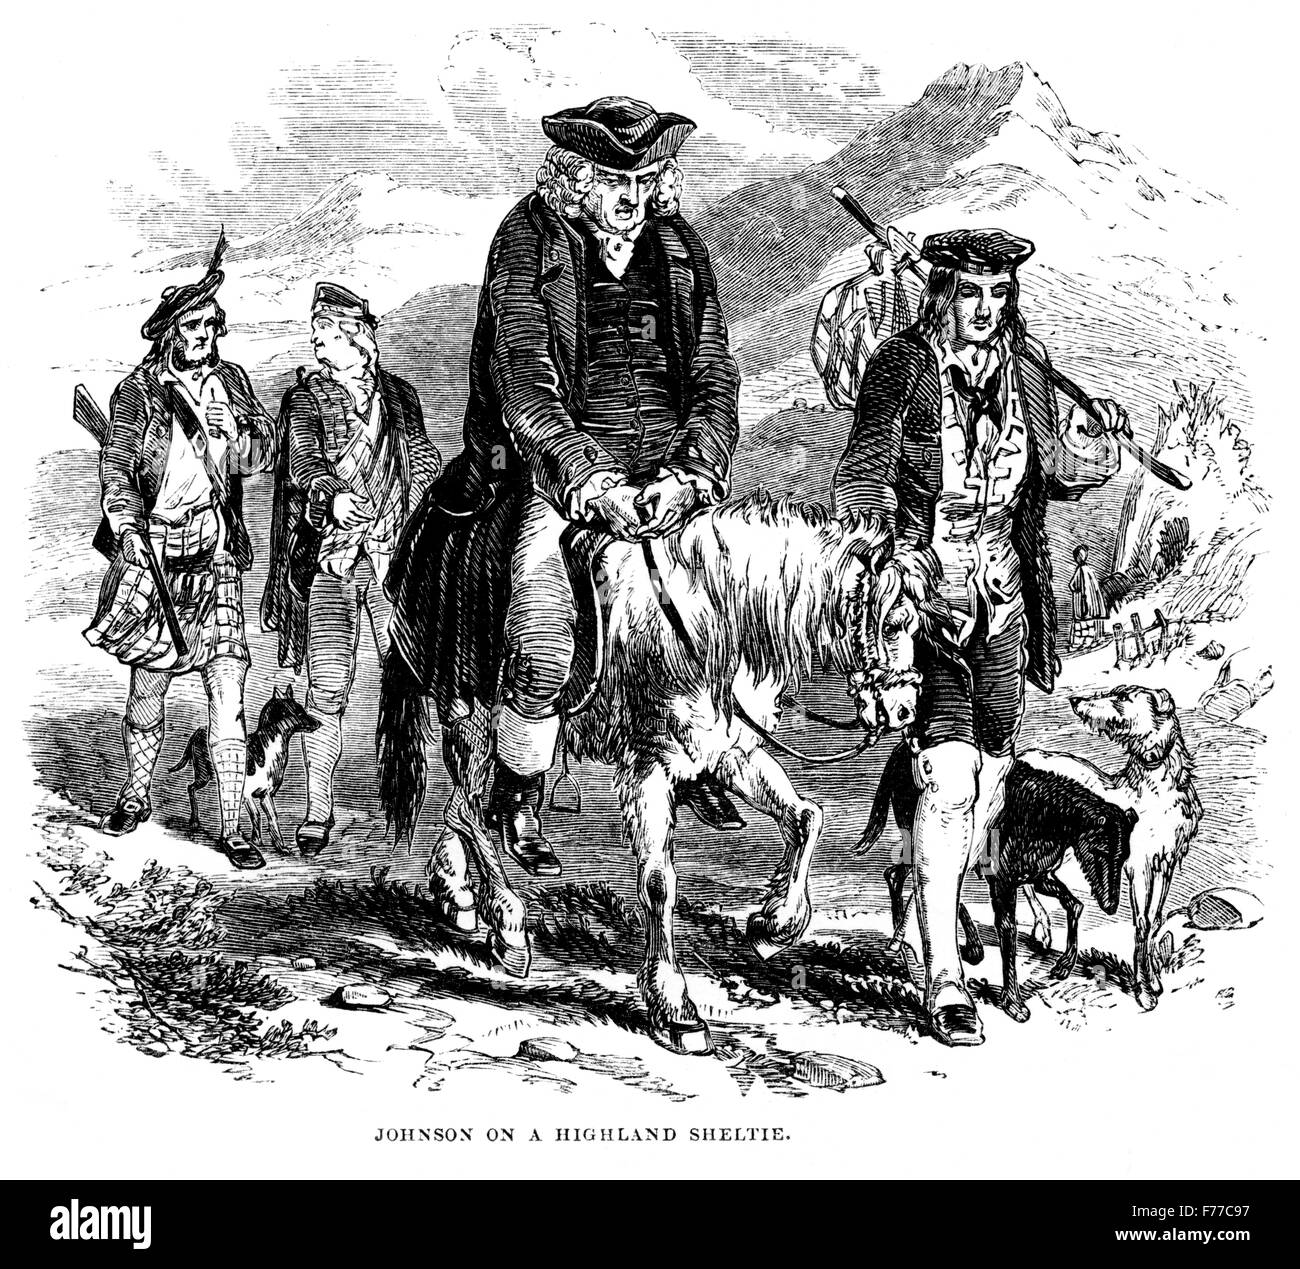 An engraving of Johnson on a Highland Sheltie scanned at high resolution from a book printed in 1852. On the Isle - Stock Image